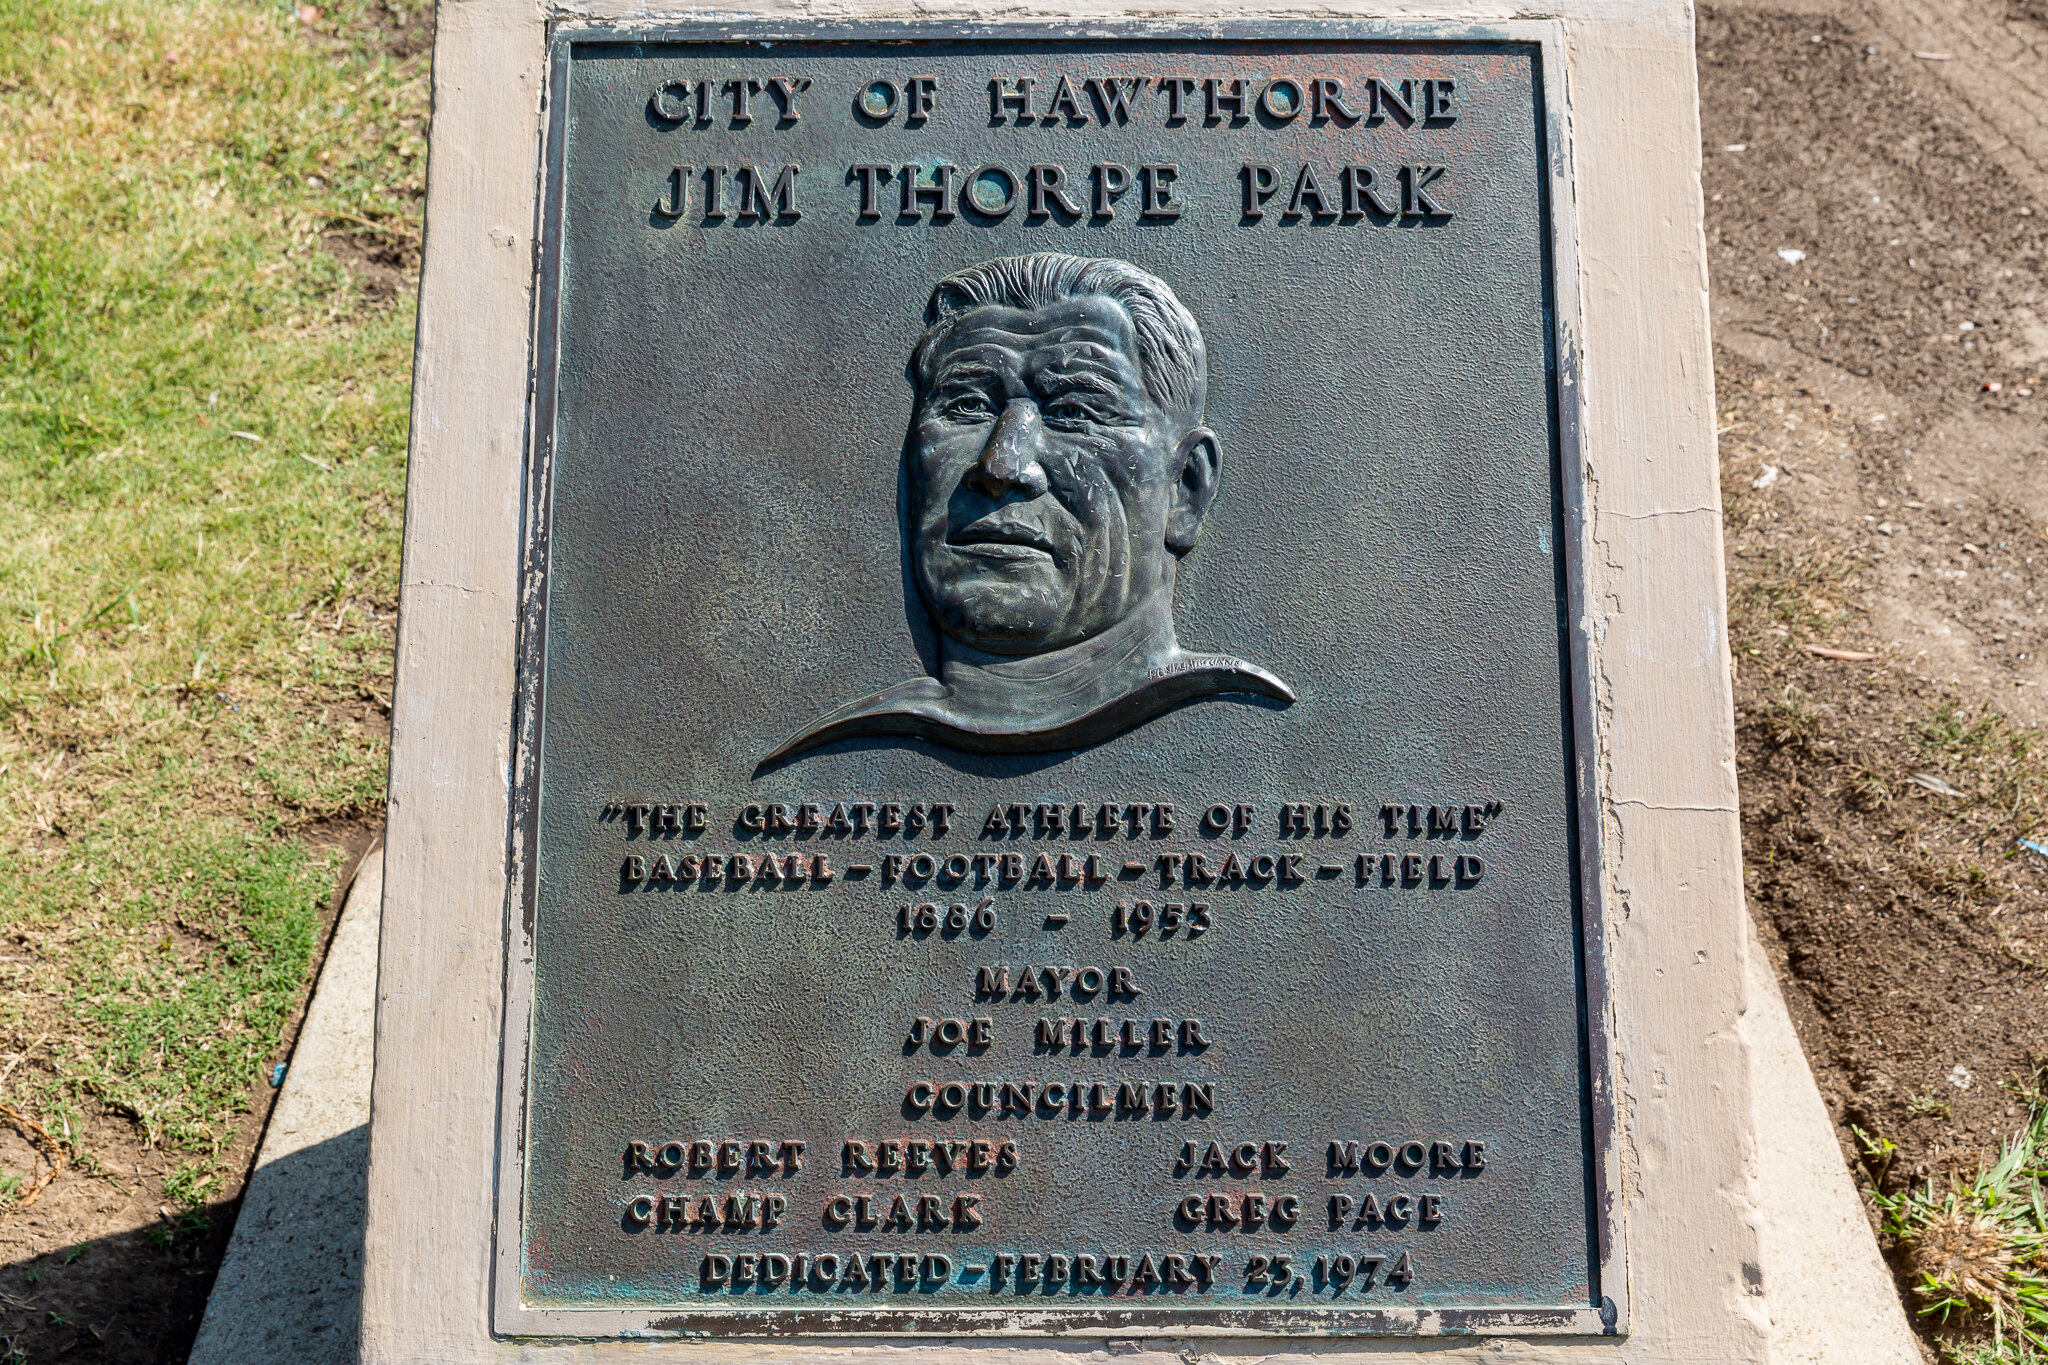 Jim Thorpe Park plaque